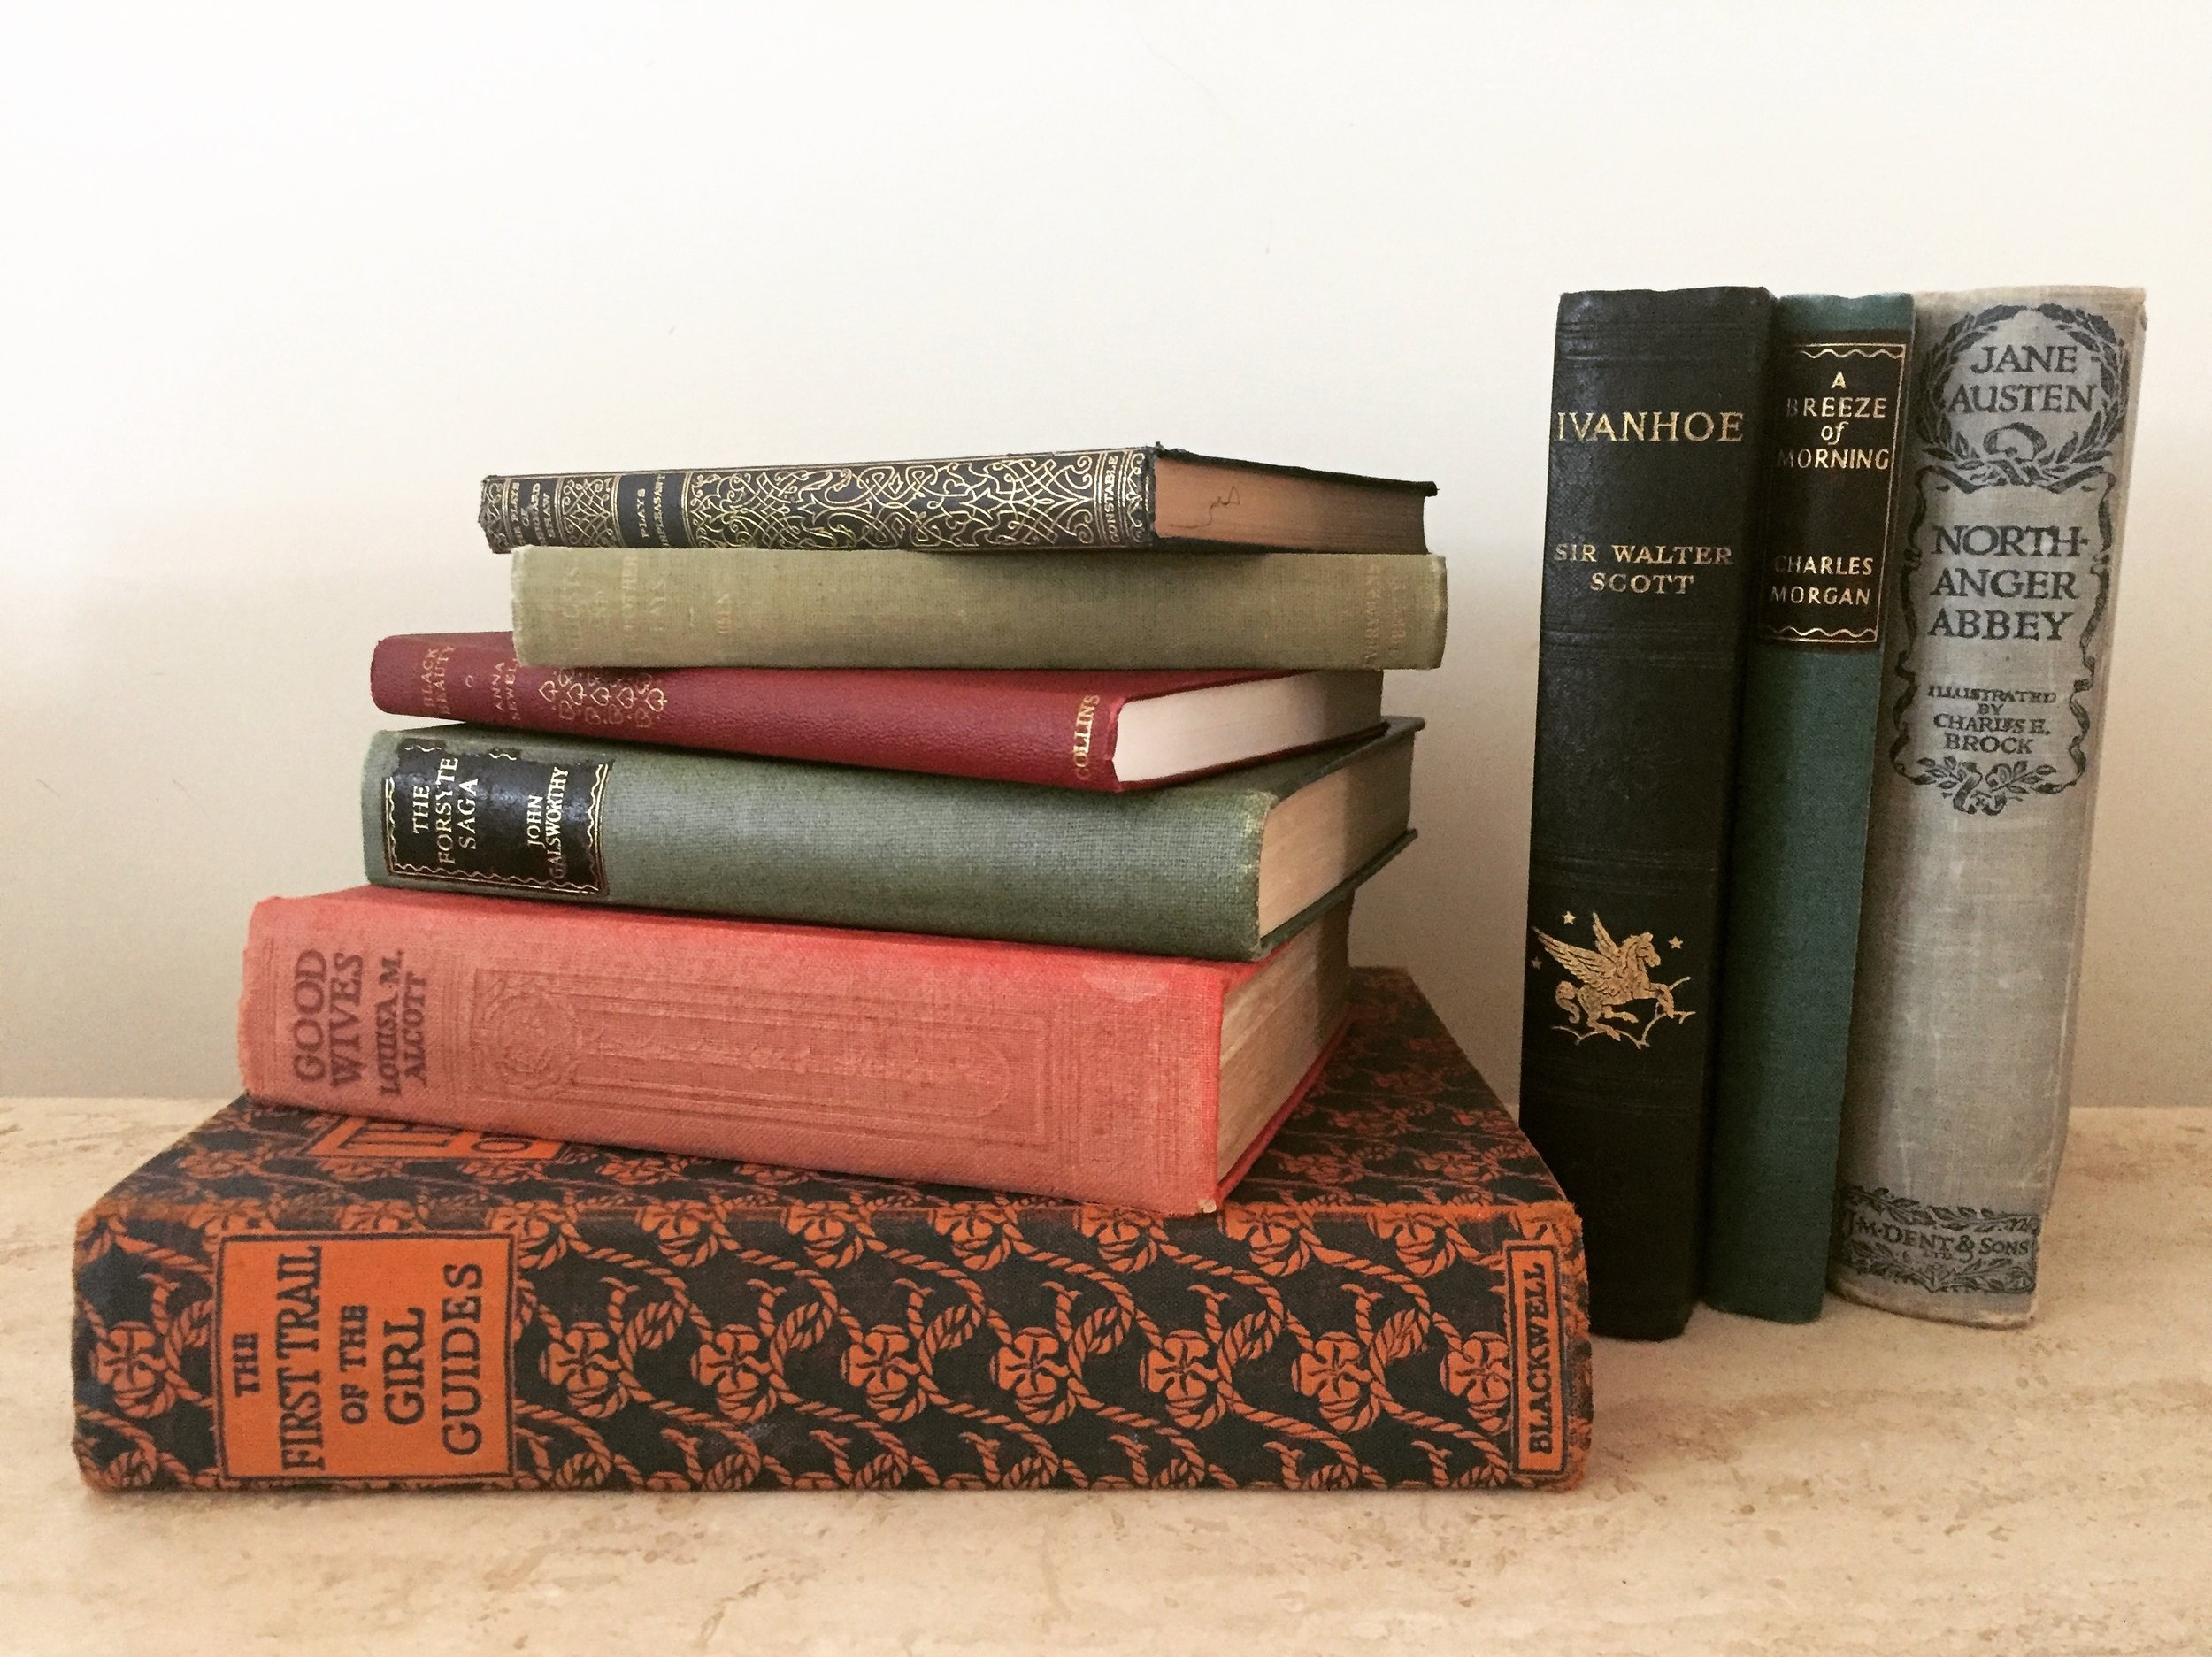 Vintage Books (small selection shown)